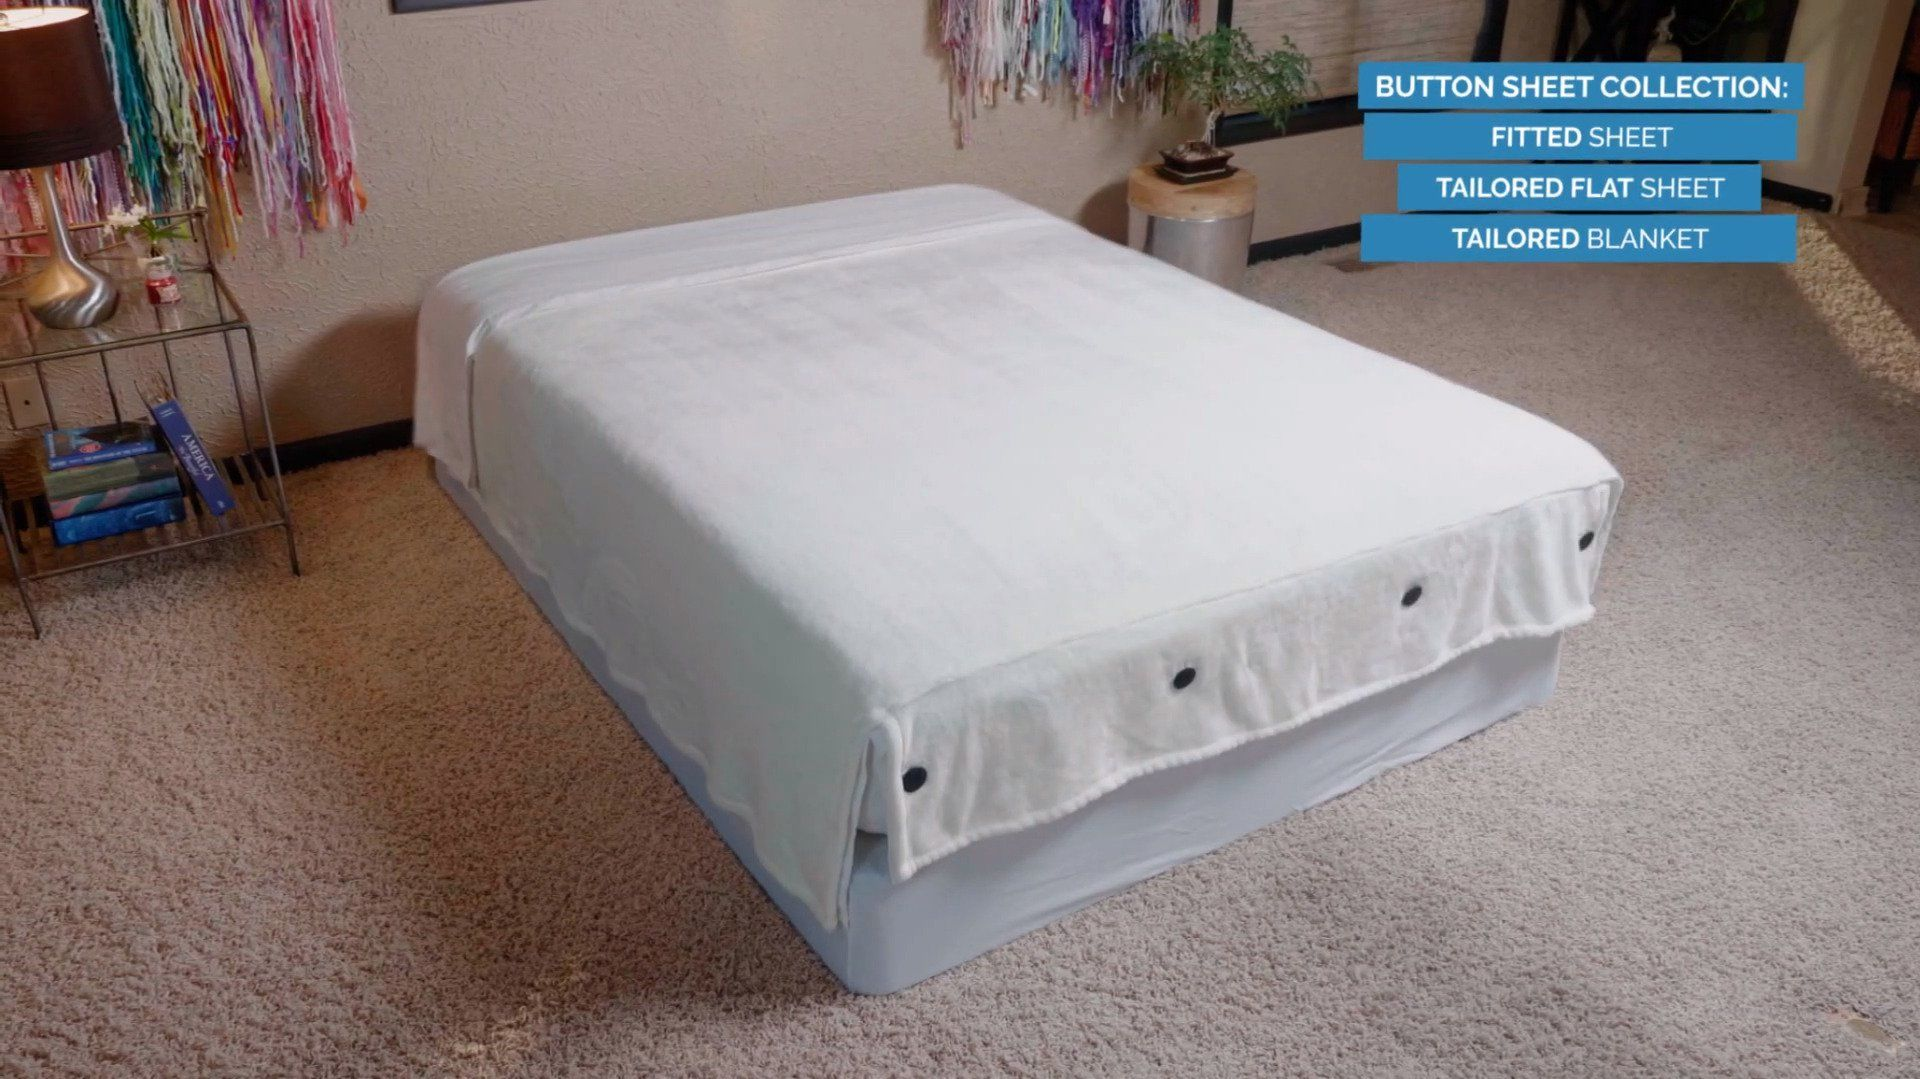 Making Your Bed Is Easier Than Ever With These Amazing Sheets